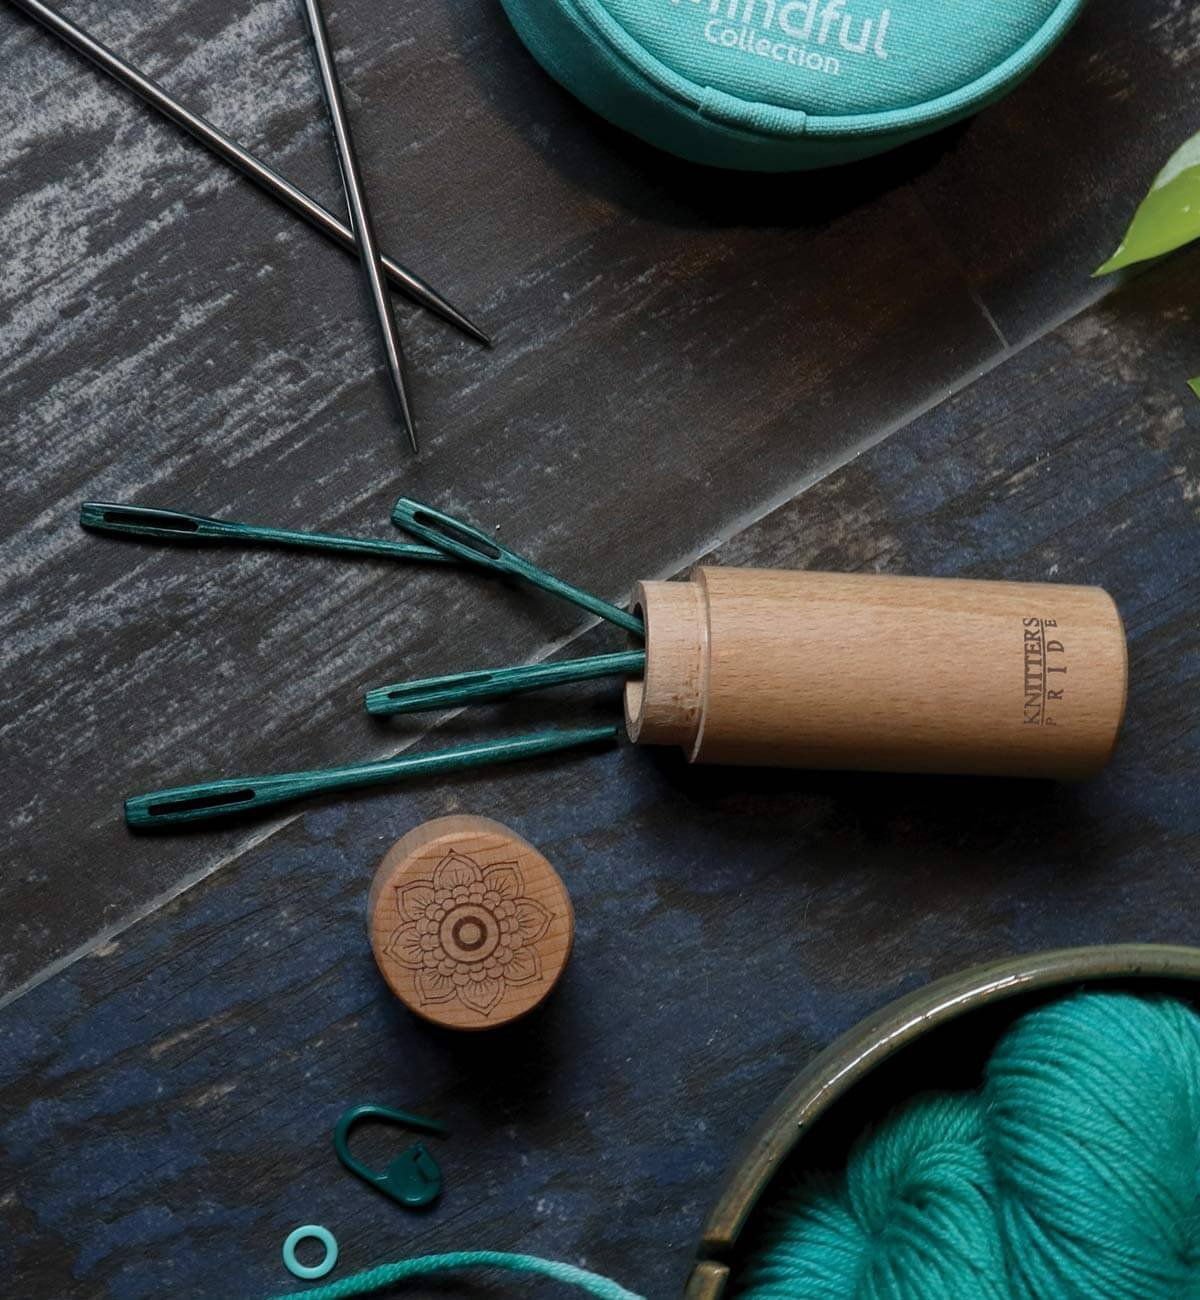 The Mindful Teal Wooden Darning Needle with Case